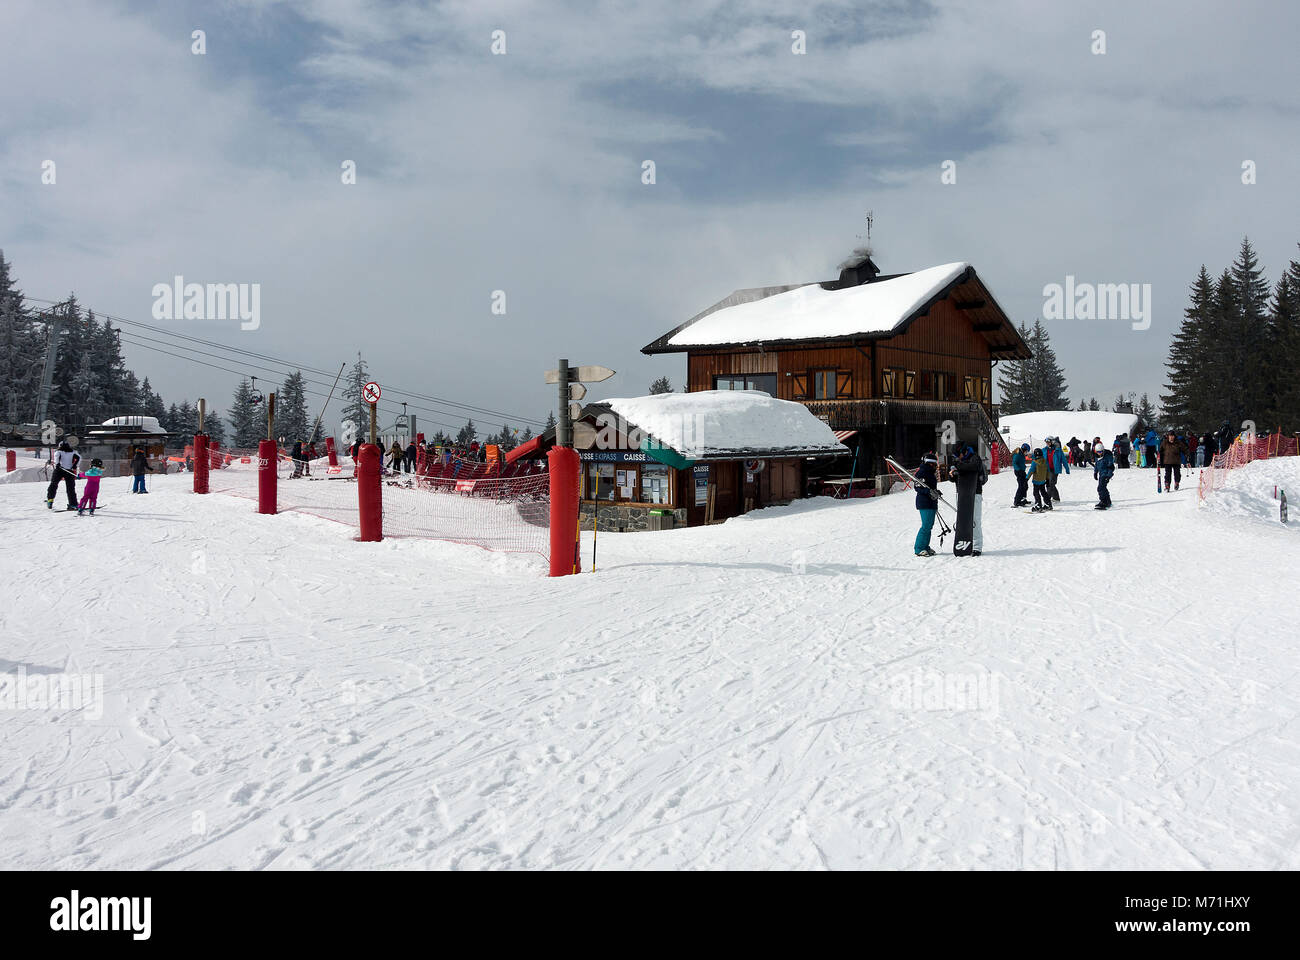 A Chalet Style Restaurant and Bar Facility with Chairlift Ticket Sales Office at Les Gets Ski Resort Haute Savoie - Stock Image